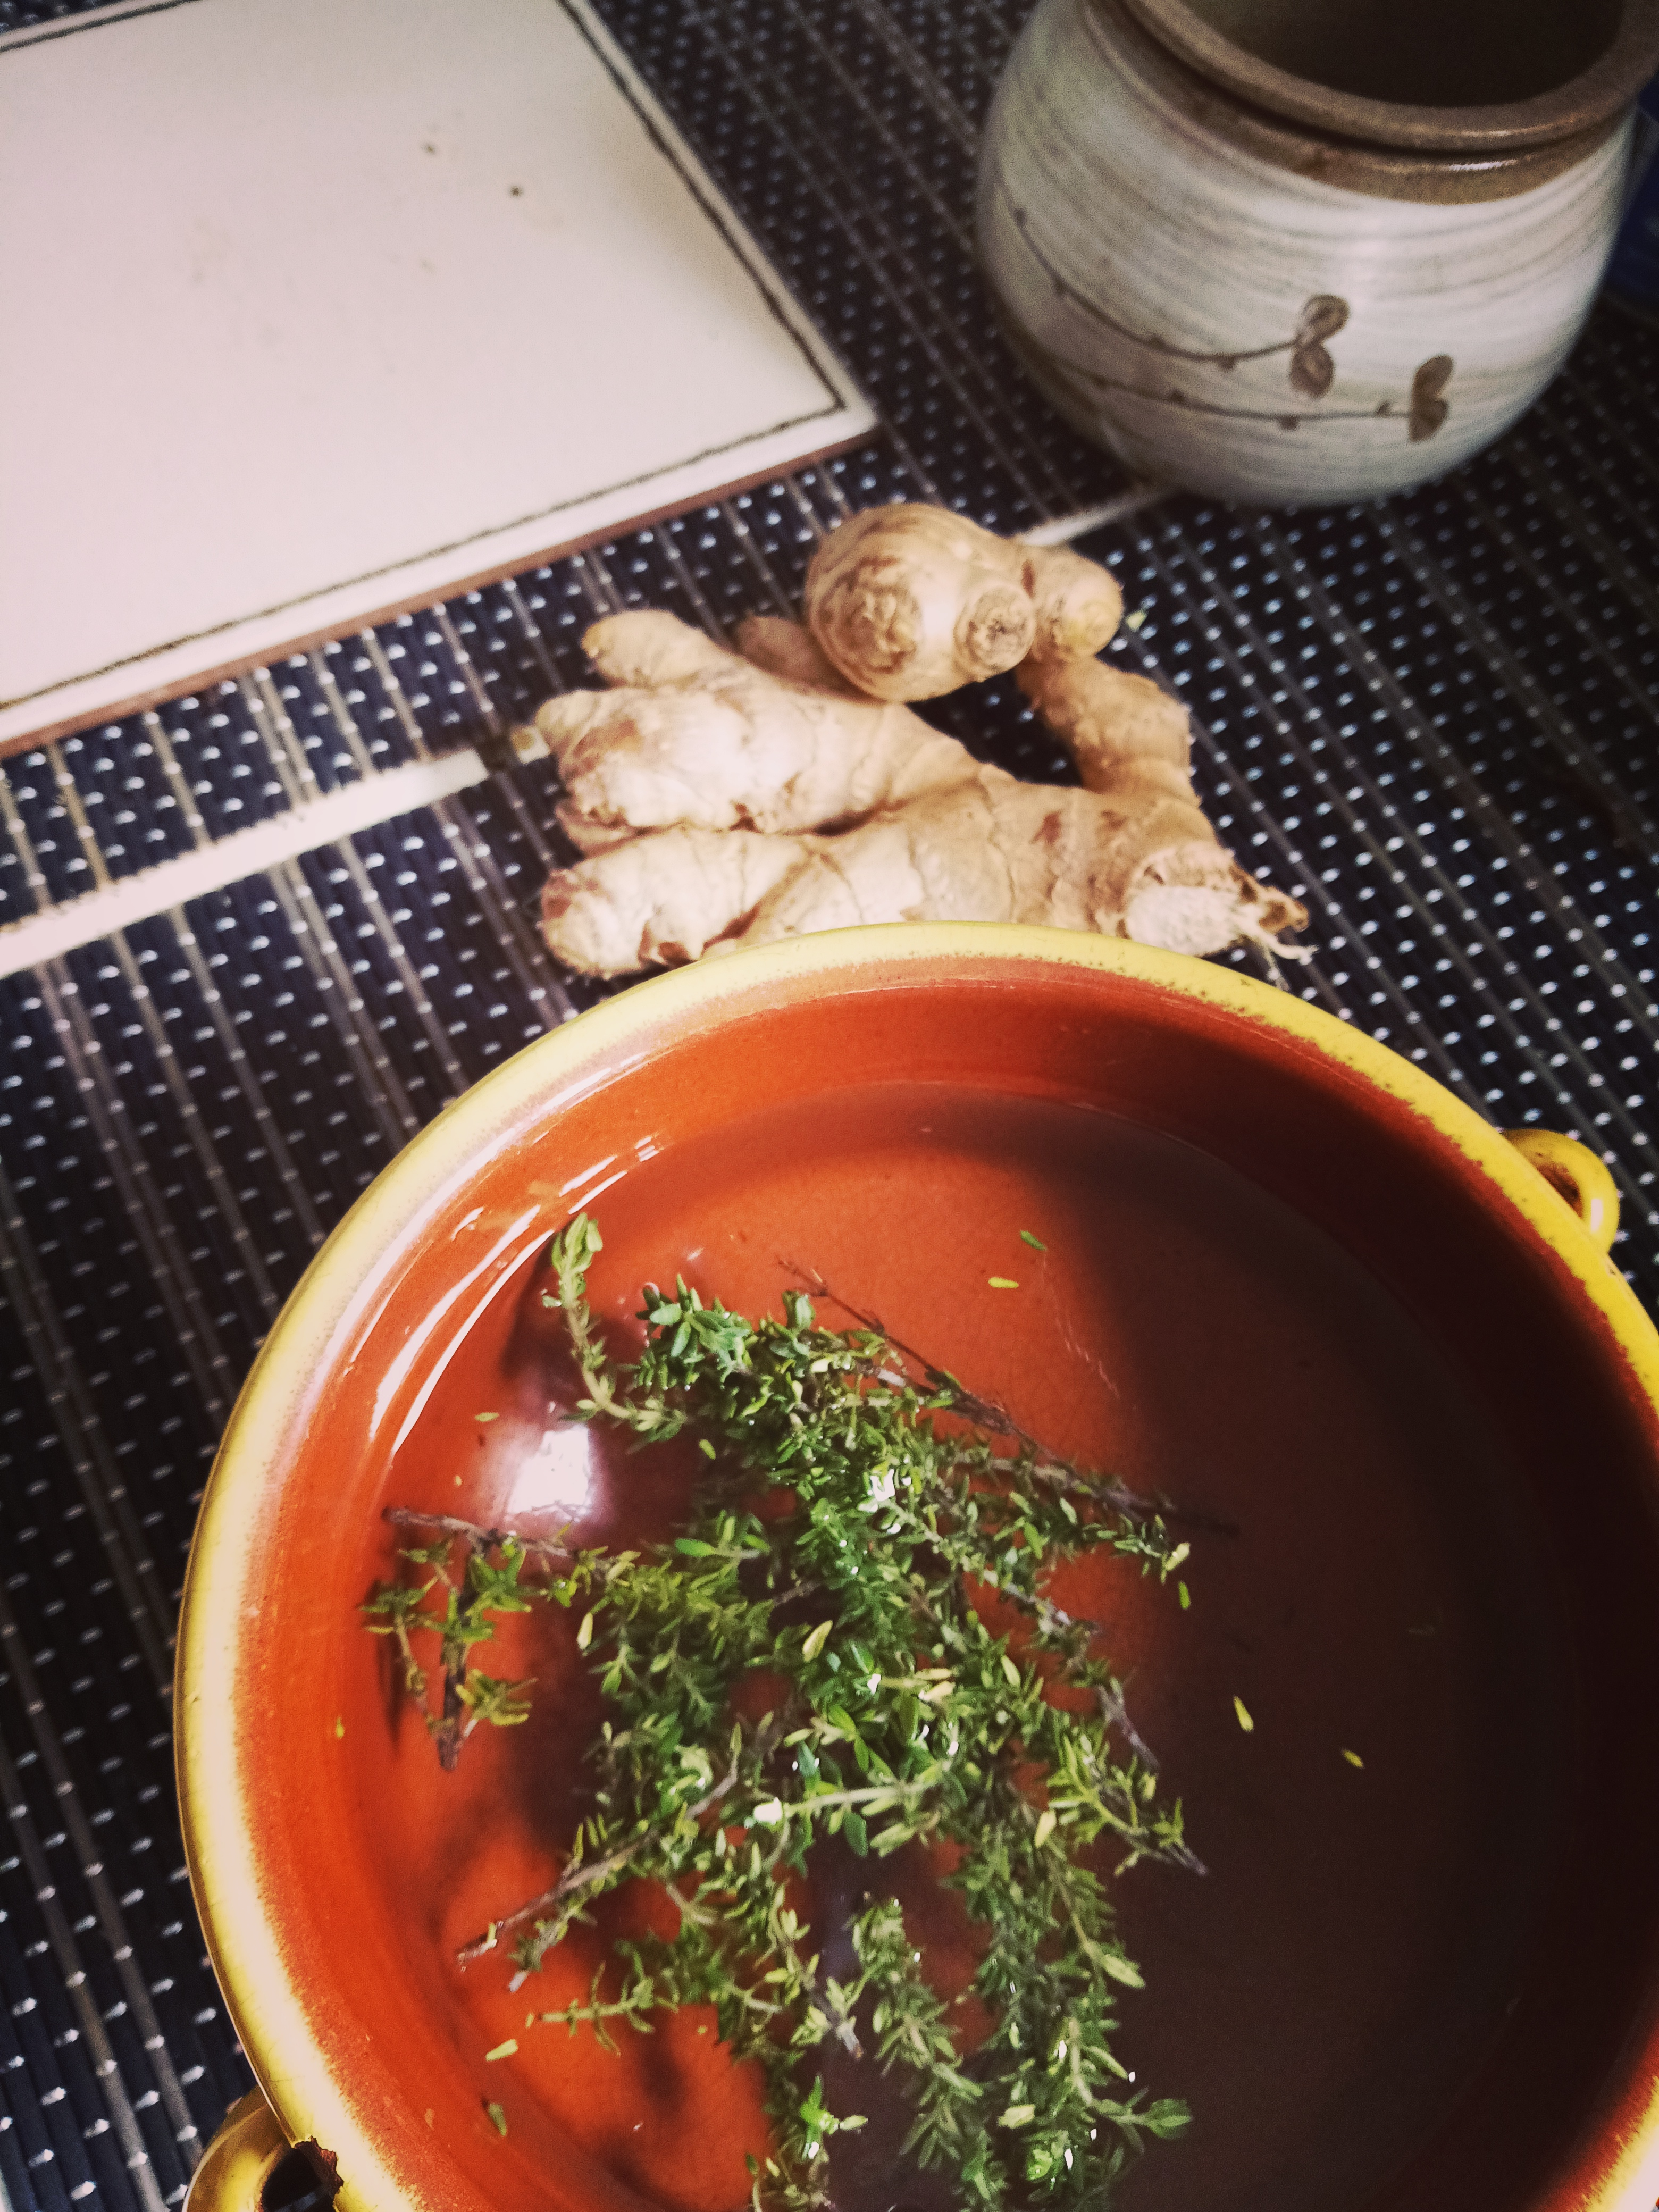 thyme and ginger tea